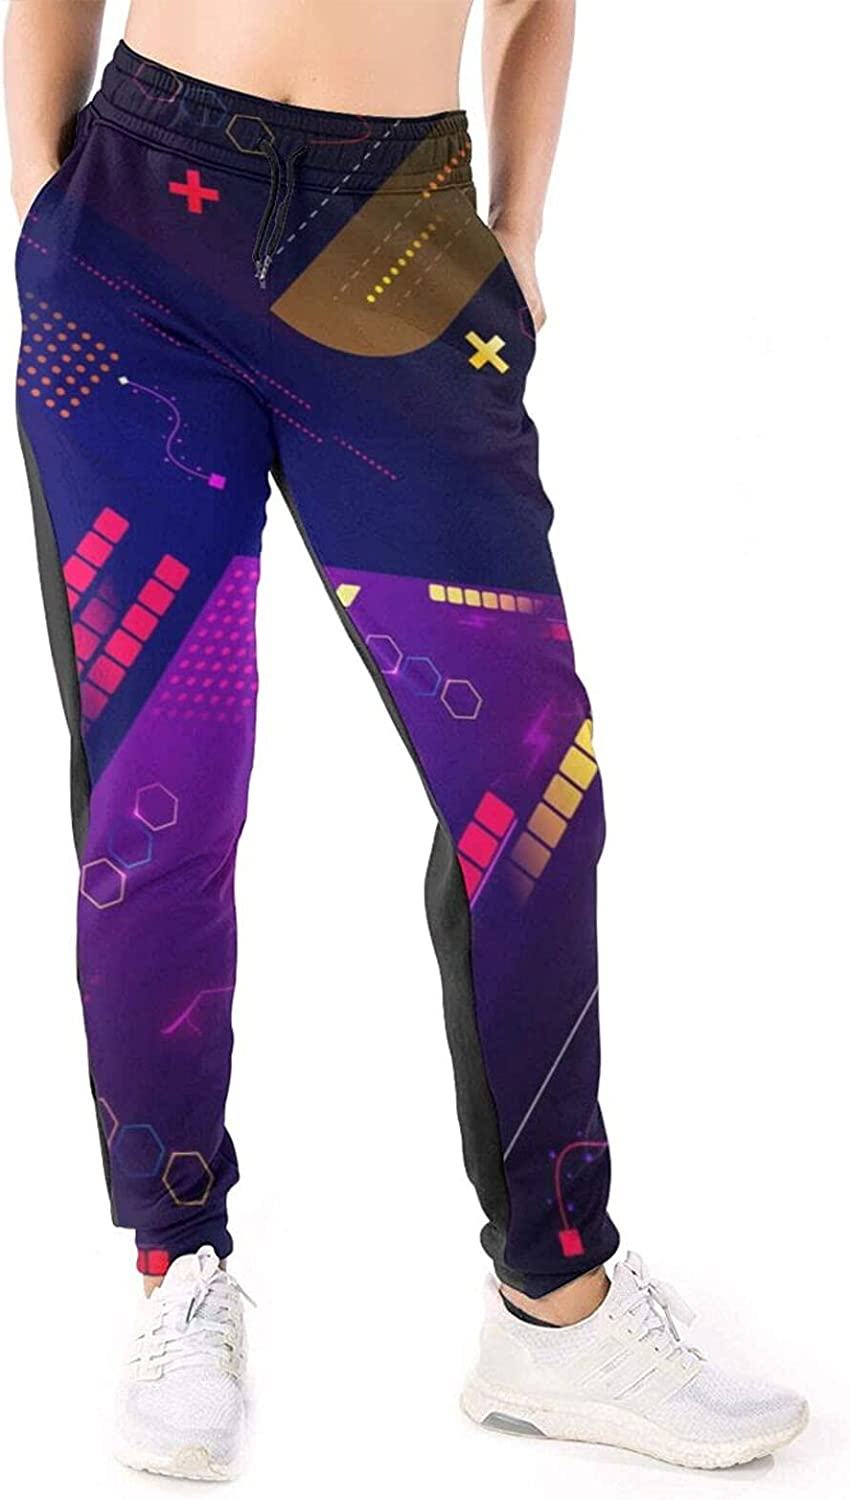 LONEA Women Joggers Pants Colorful Geometric Abstract Digital Athletic Sweatpants with Pockets Casual Trousers Baggy